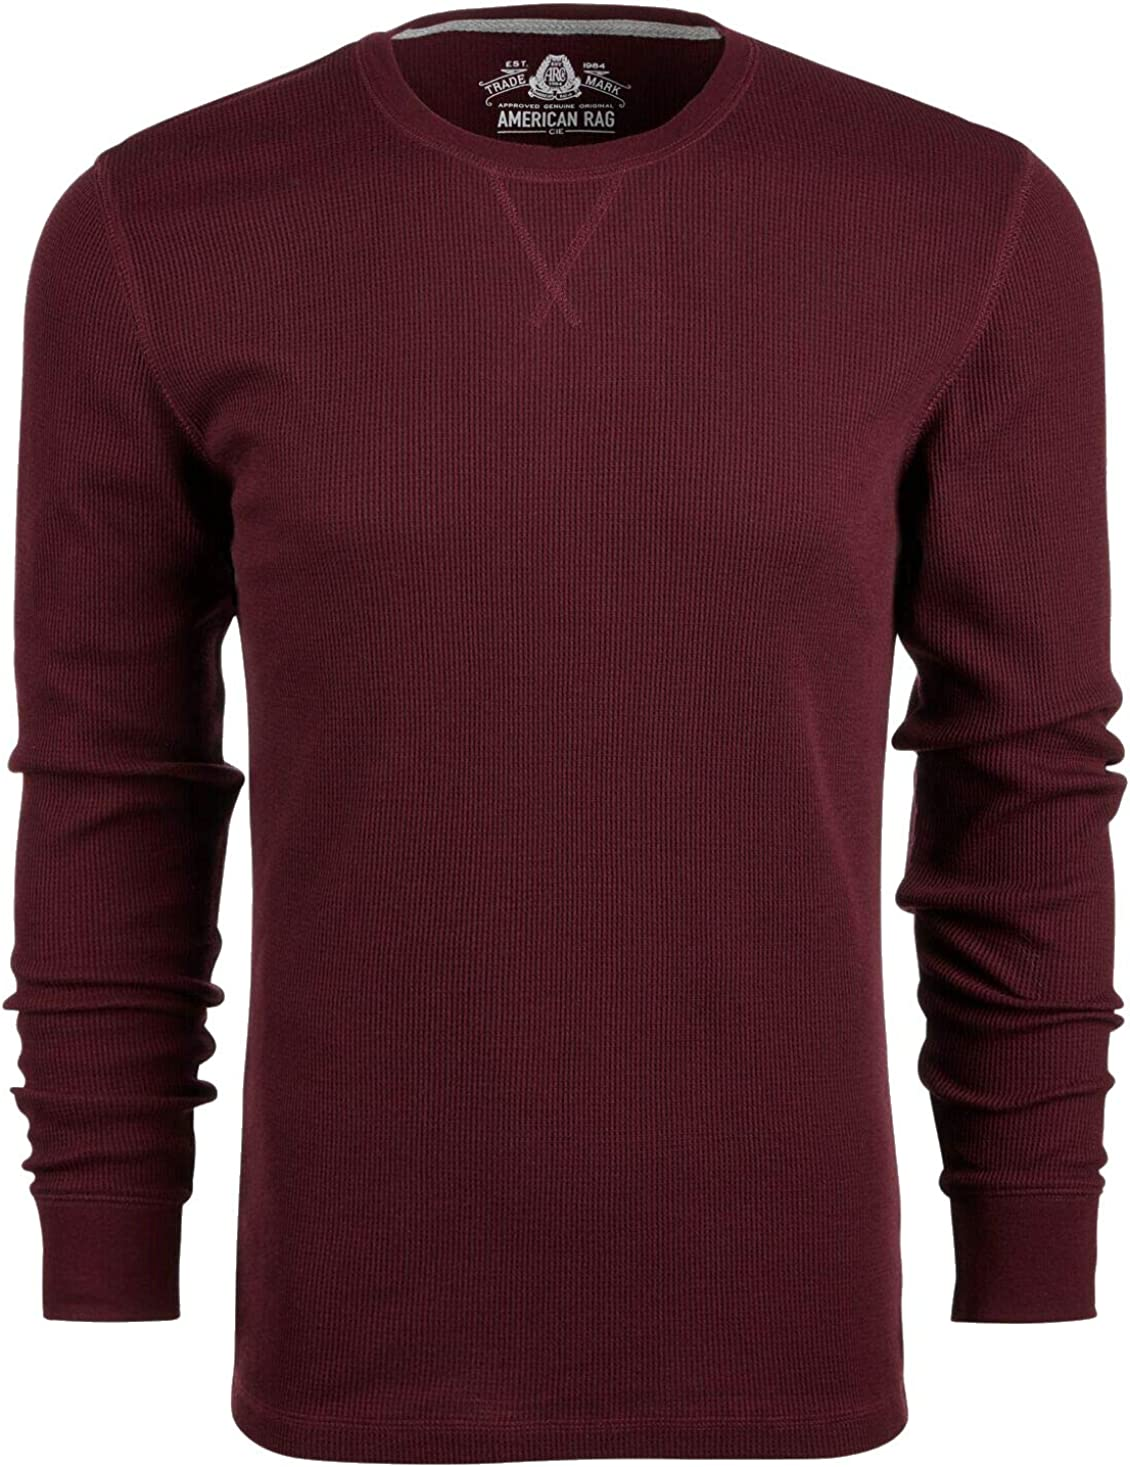 American Rag Mens T-Shirt Coverstitch Thermal Crewneck Tee Red 2XL